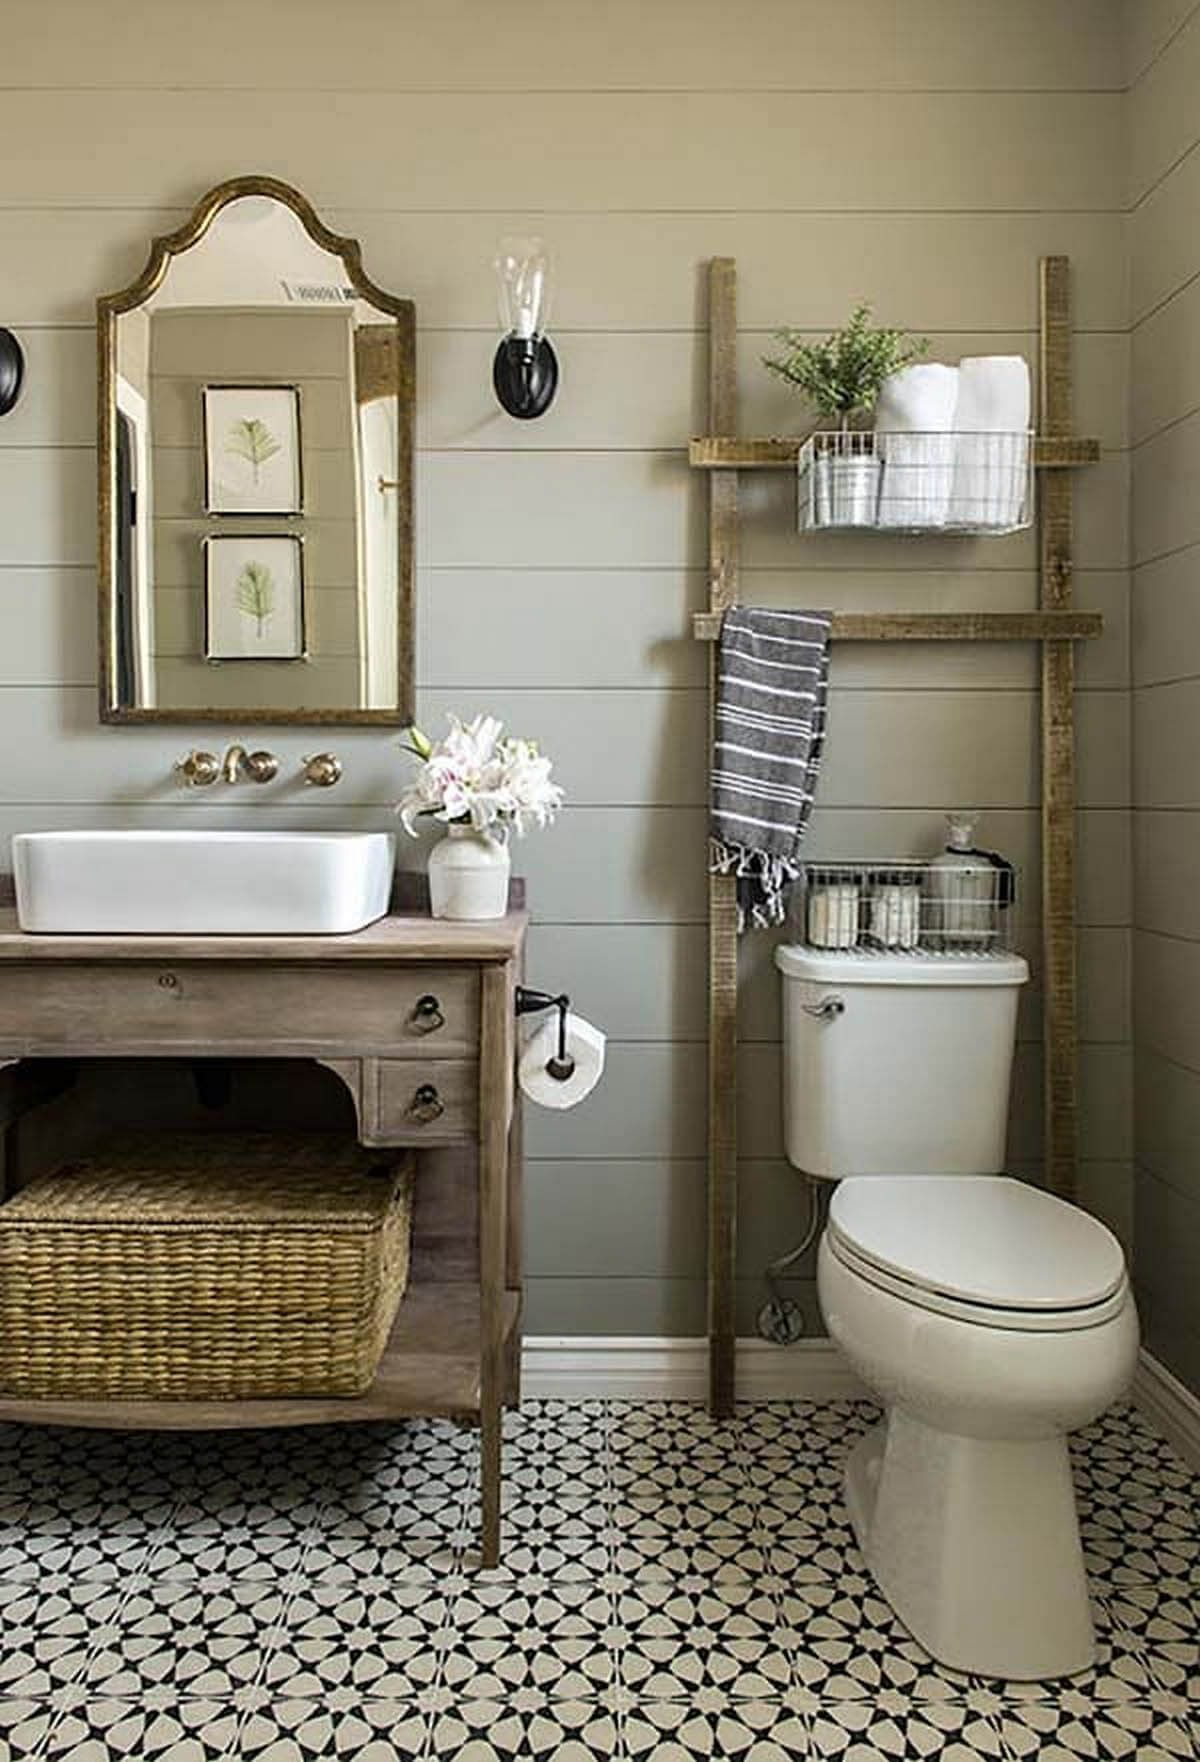 36 Beautiful Farmhouse Bathroom Design and Decor Ideas You Will Go on beautiful country office, beautiful country dining rooms, beautiful country interior design, beautiful country doors, beautiful country homes, beautiful bathroom ideas, beautiful tuscan bathroom, beautiful bathroom showers, beautiful country showers, beautiful bathroom wallpaper, beautiful country city, beautiful bathroom designs, beautiful country area, beautiful amazing bathroom, beautiful country driveways, beautiful country sunset, big house bathrooms, beautiful romantic bedrooms, beautiful country bedrooms, beautiful bathroom walls,